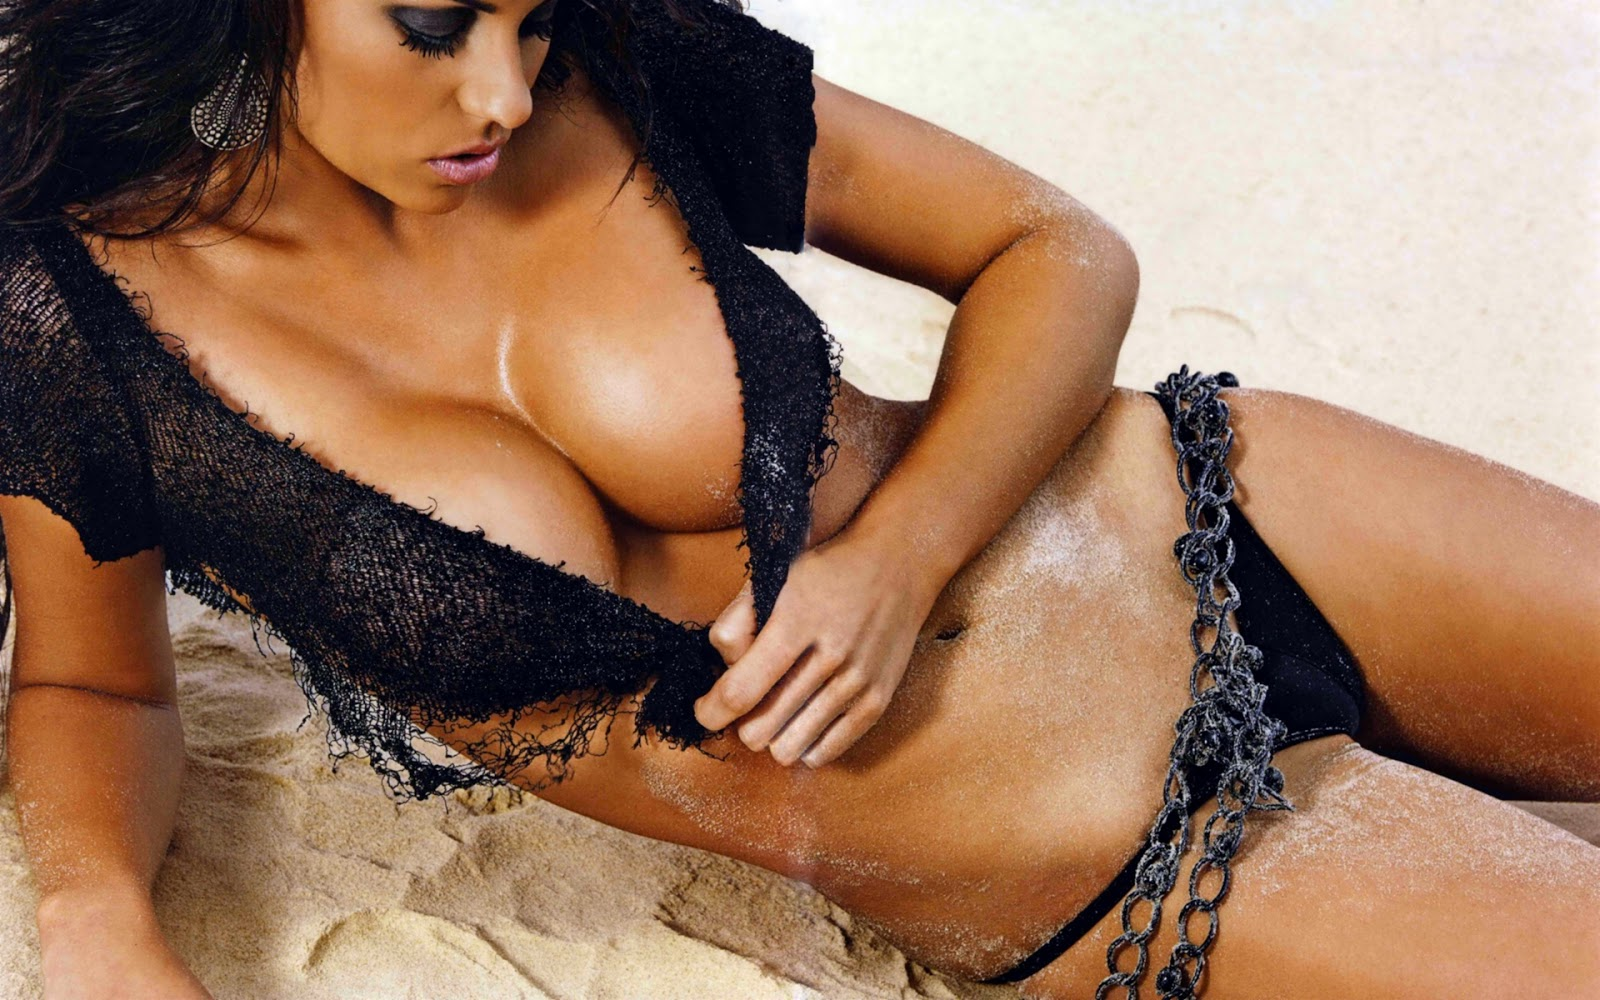 http://4.bp.blogspot.com/-a9l2kv68szU/TcrqADqO2DI/AAAAAAAAASY/a1WsHT4Tv_c/s1600/hot_brunette_on_beach_hd_widescreen_wallpapers_1920x1200.jpeg